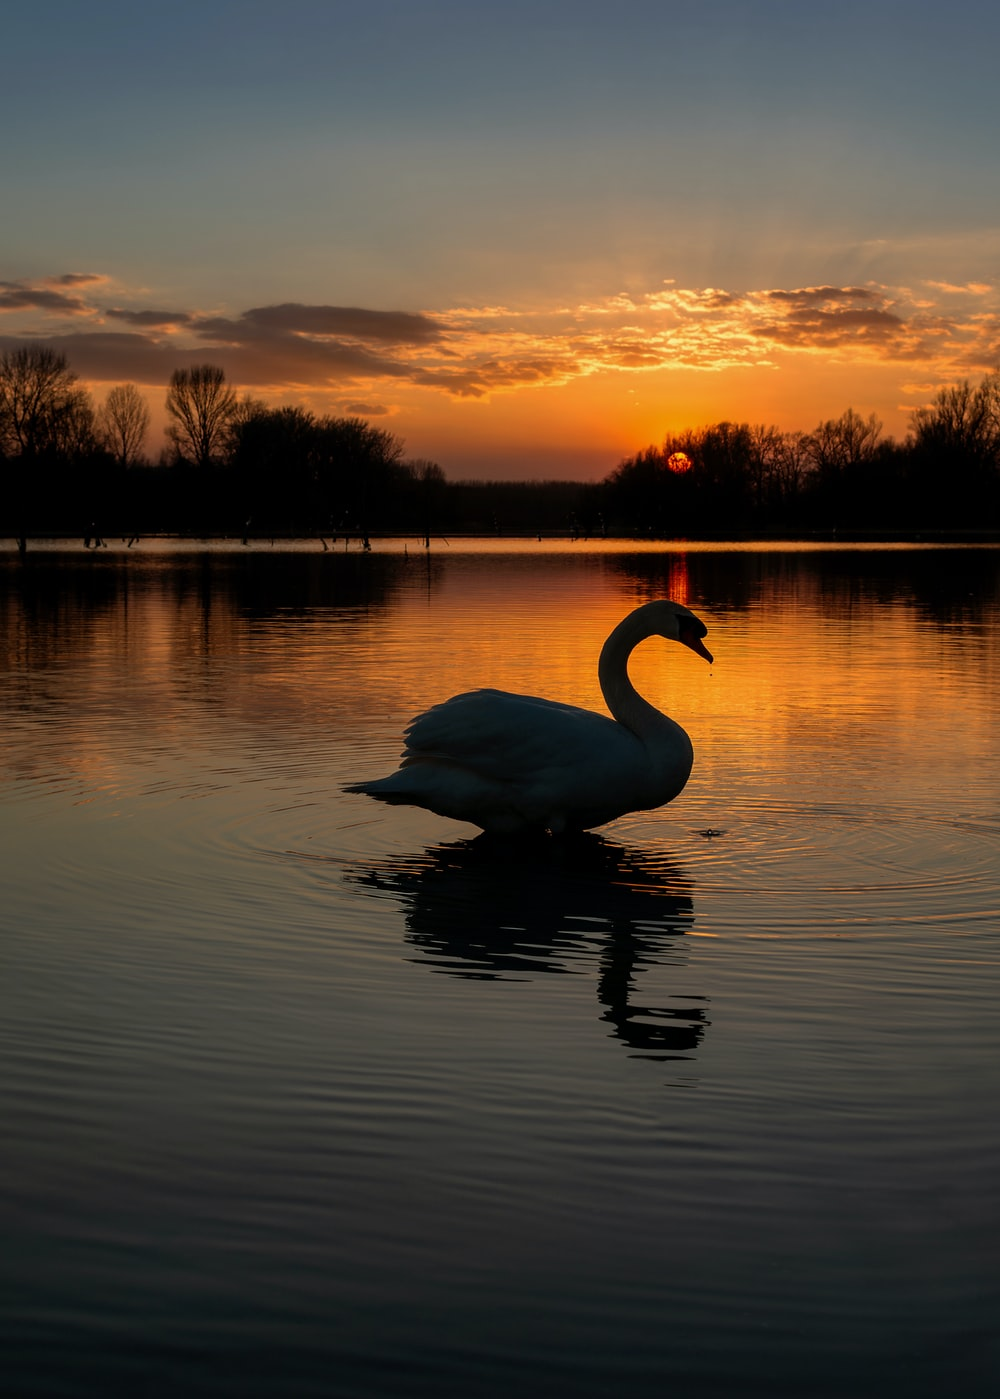 silhouette photography of duck at water